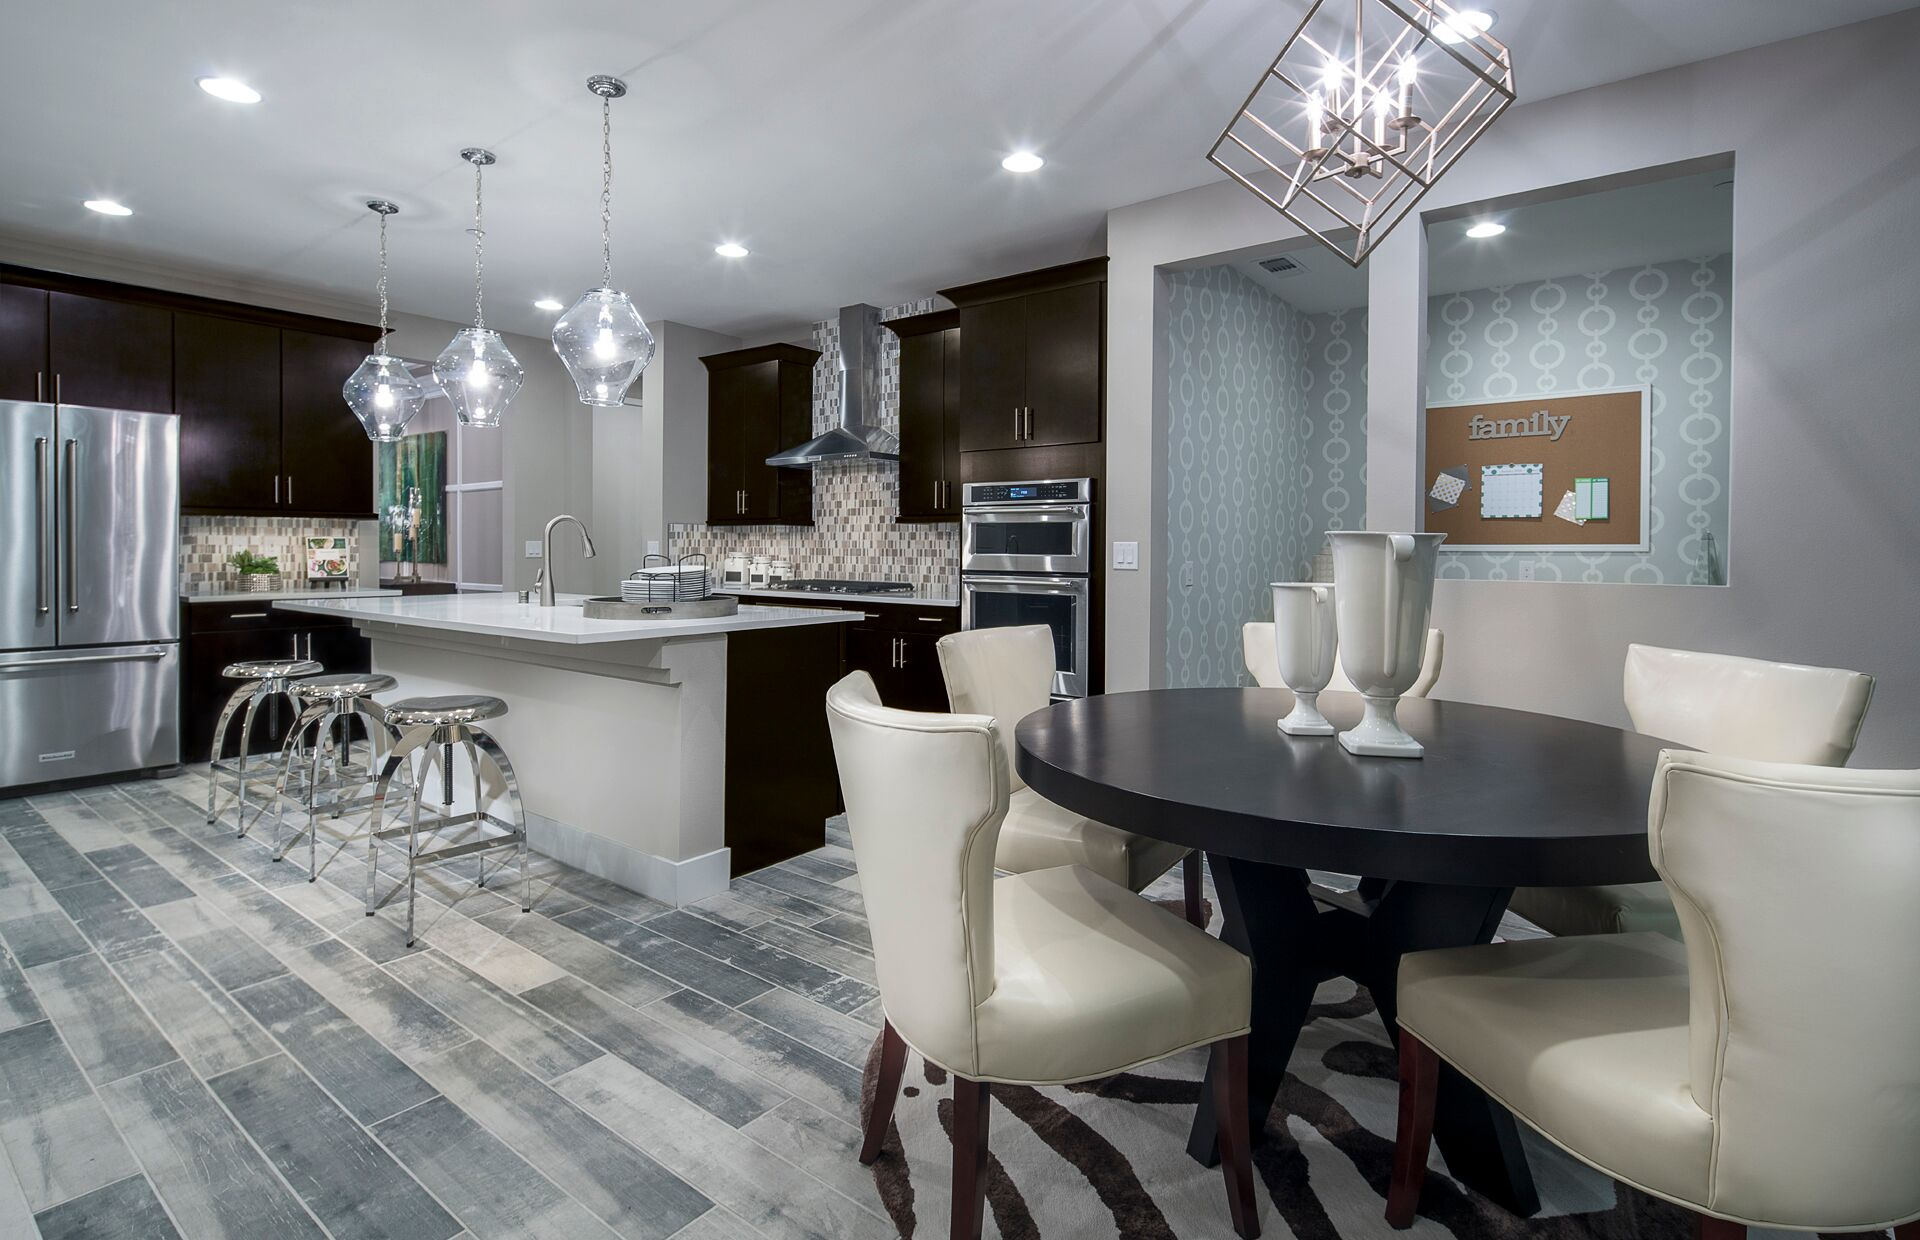 Pulte_kitchen5